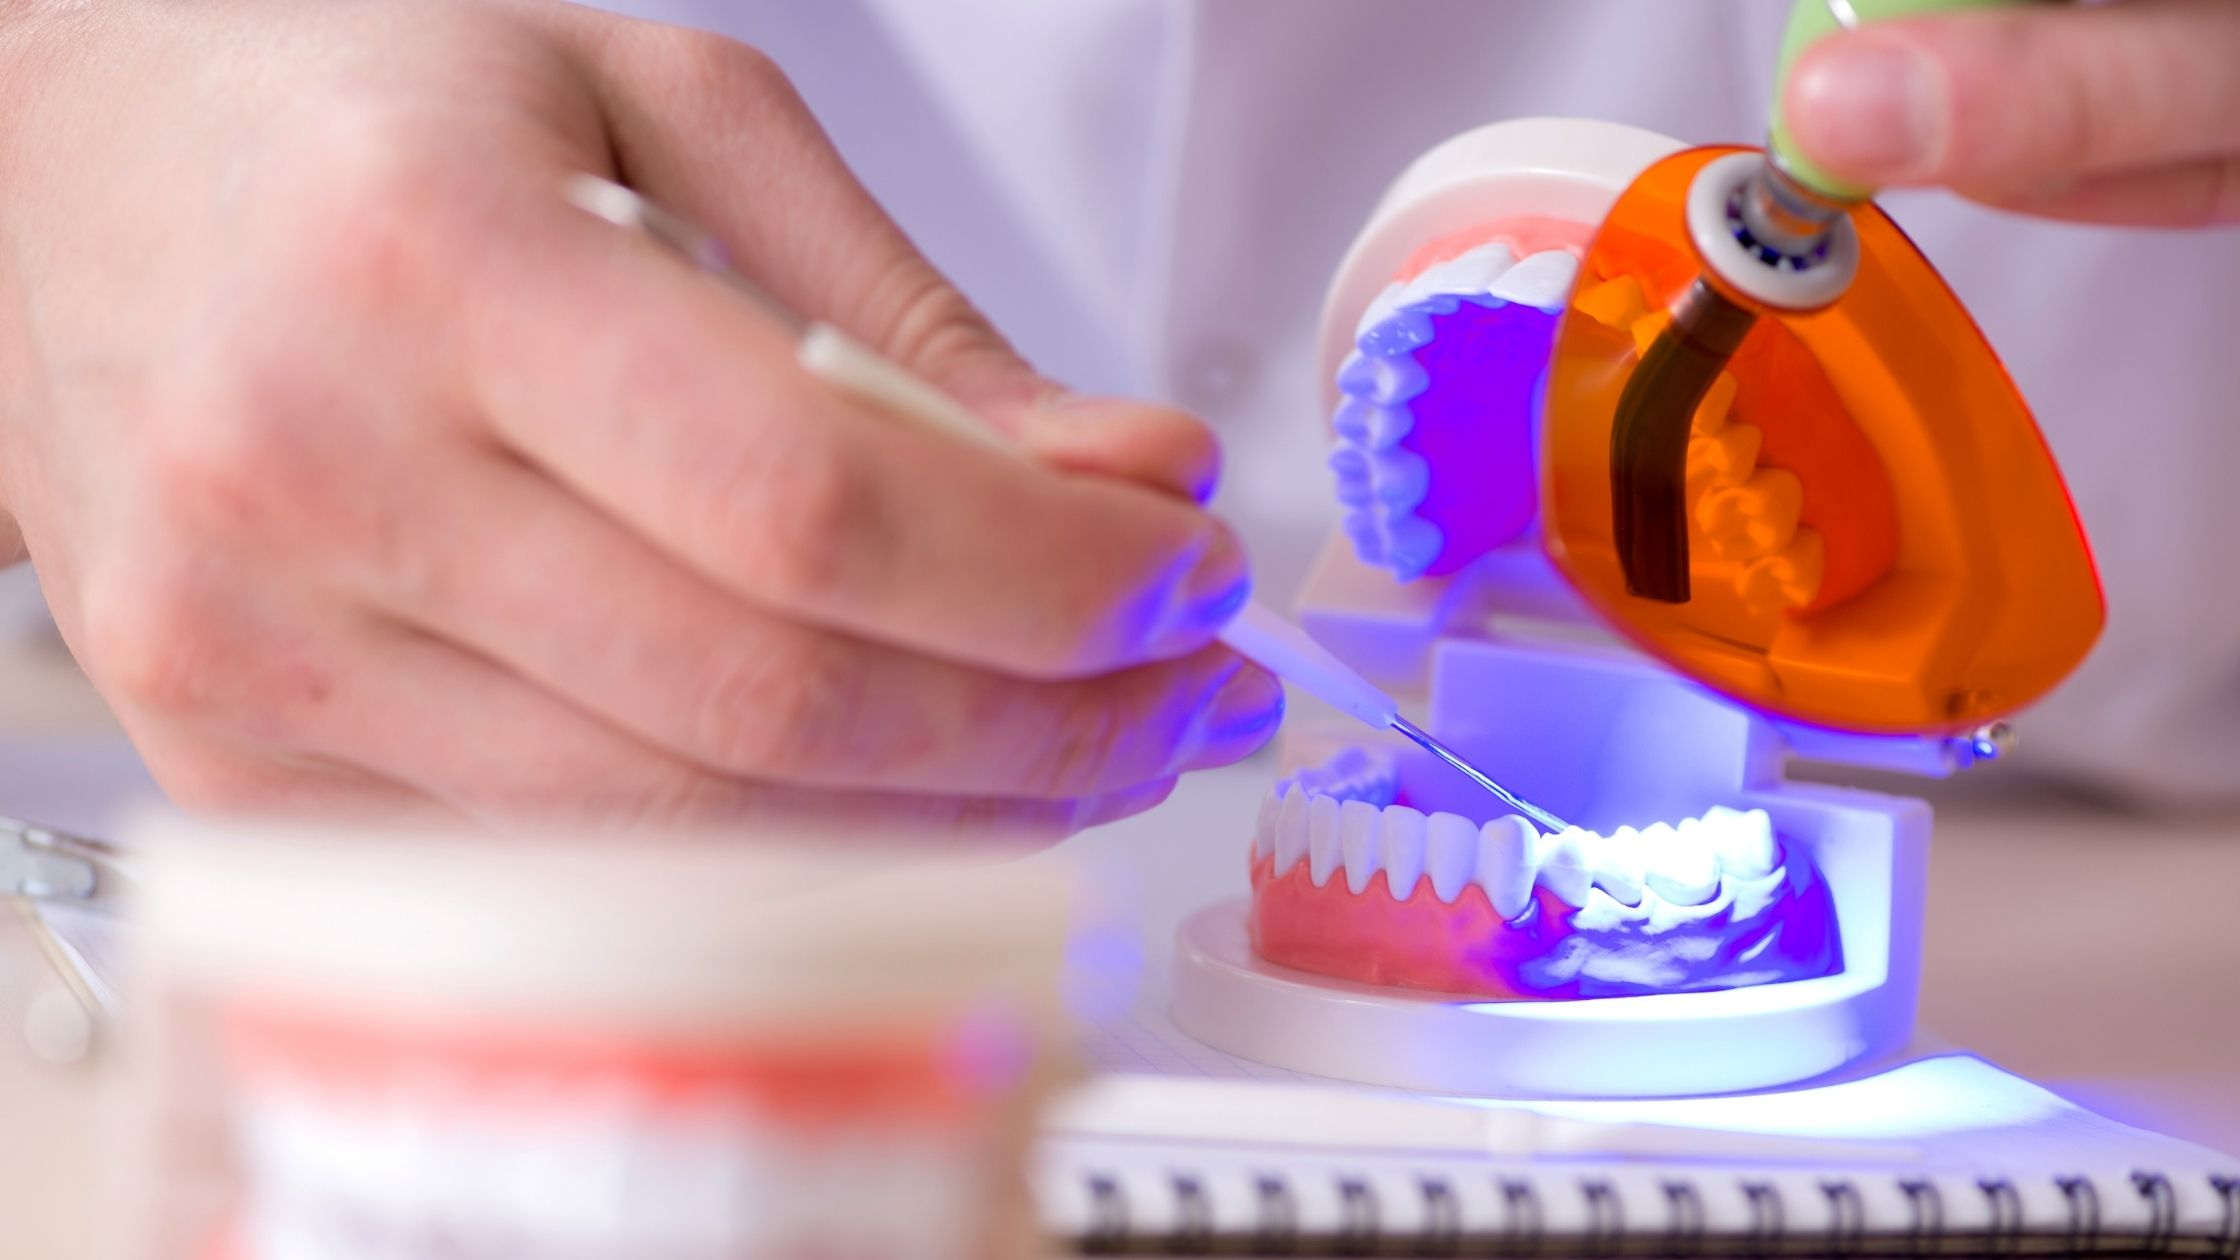 Treating Gum Disease With Lasers